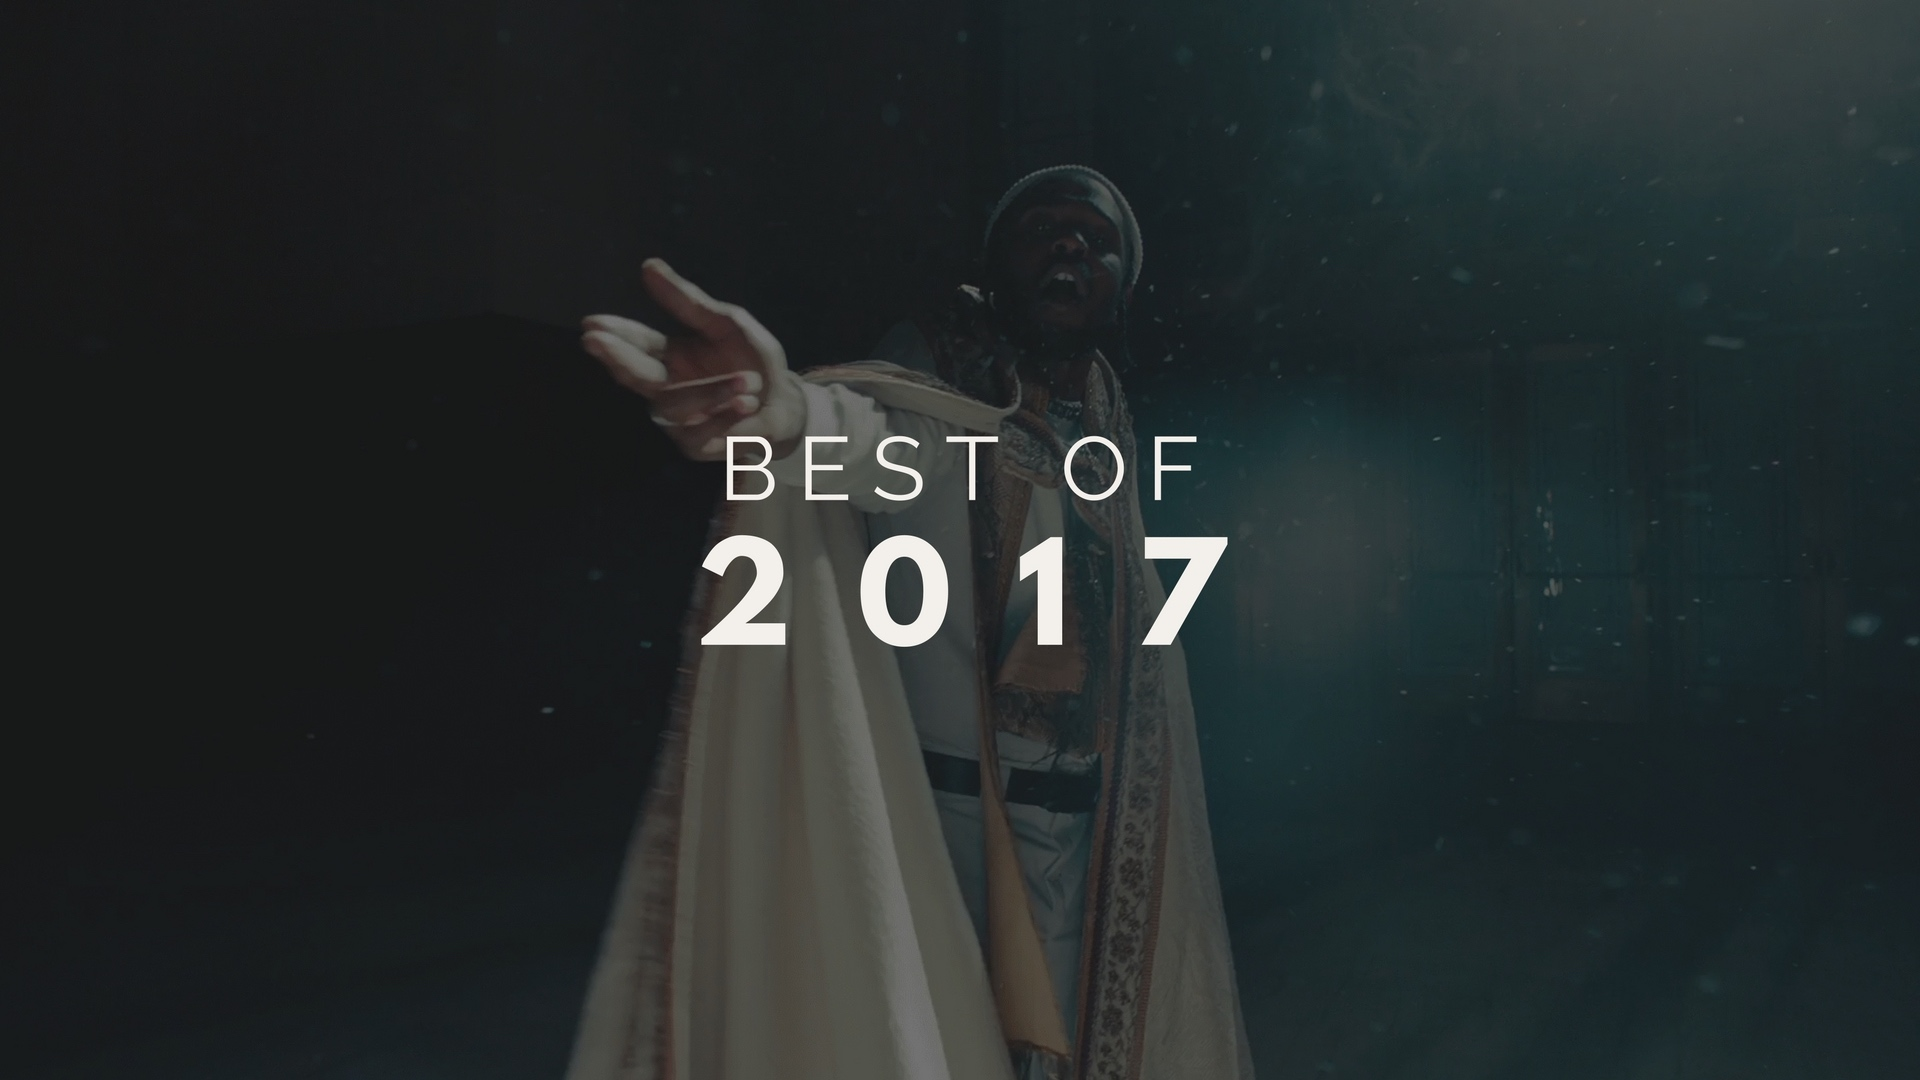 The Sights and Sounds of 2017 - Behind the Setlist